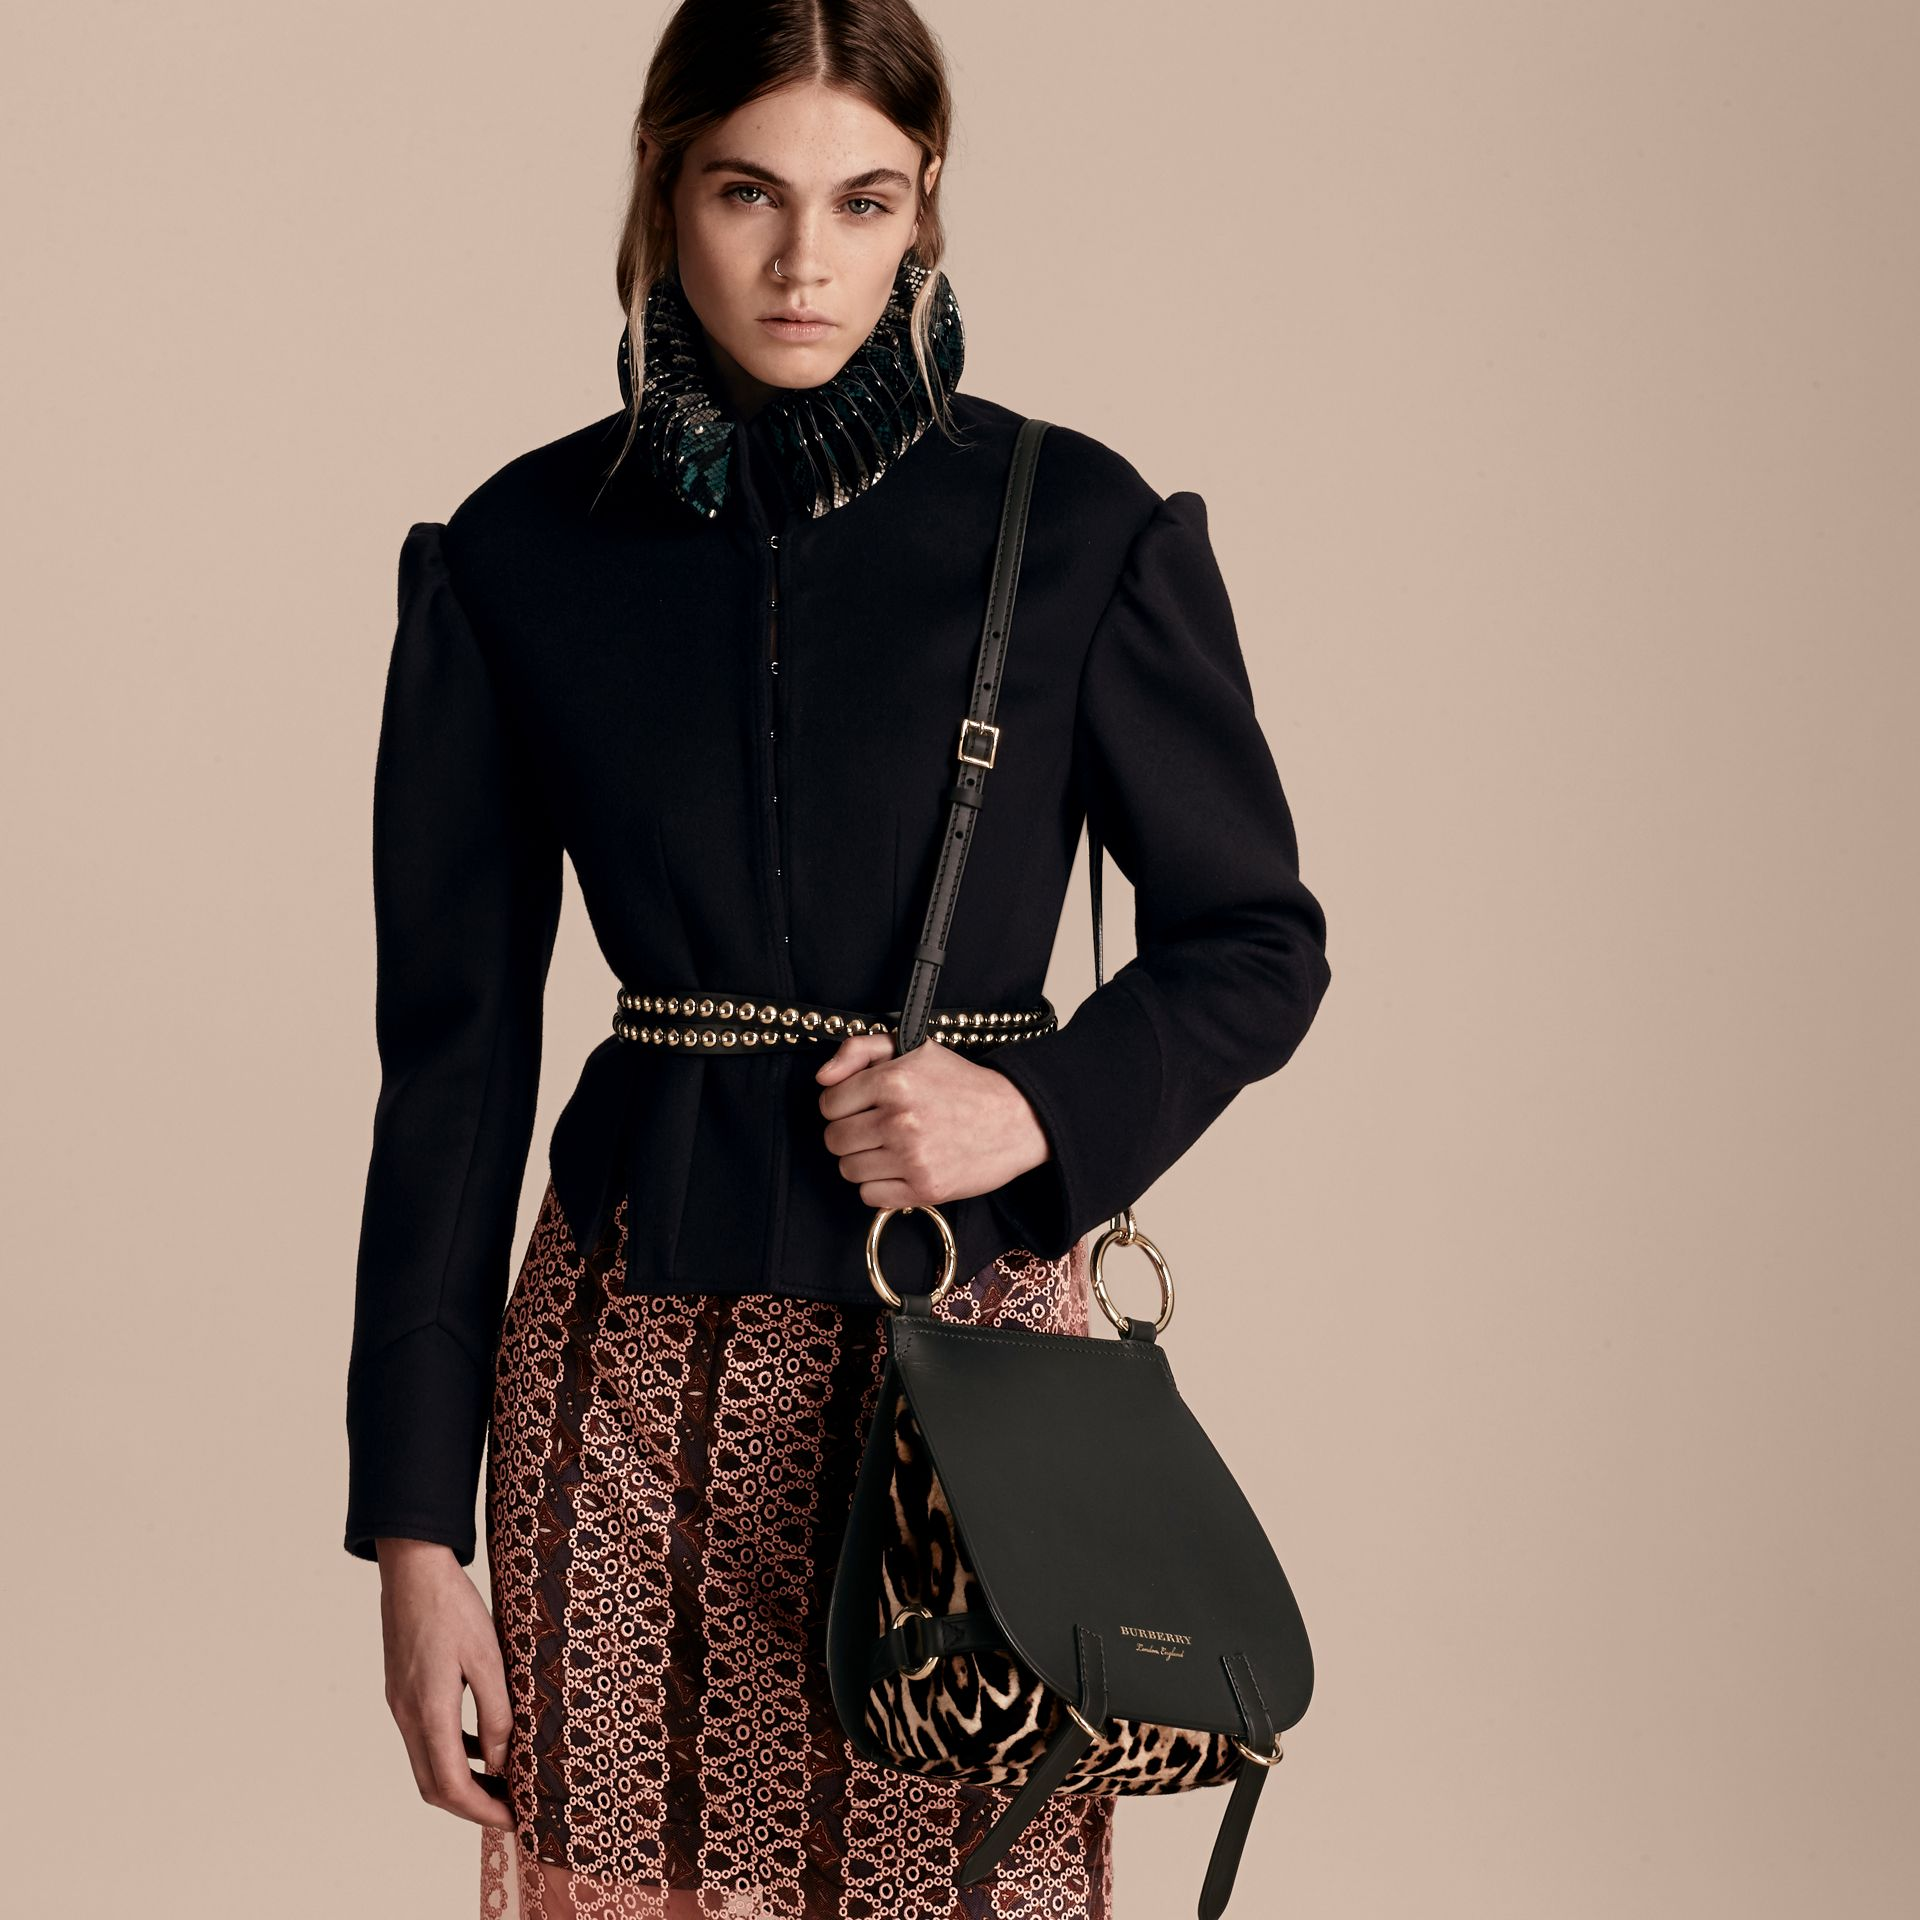 Borsa The Bridle in pelle e cavallino (Nero) - Donna | Burberry - immagine della galleria 4